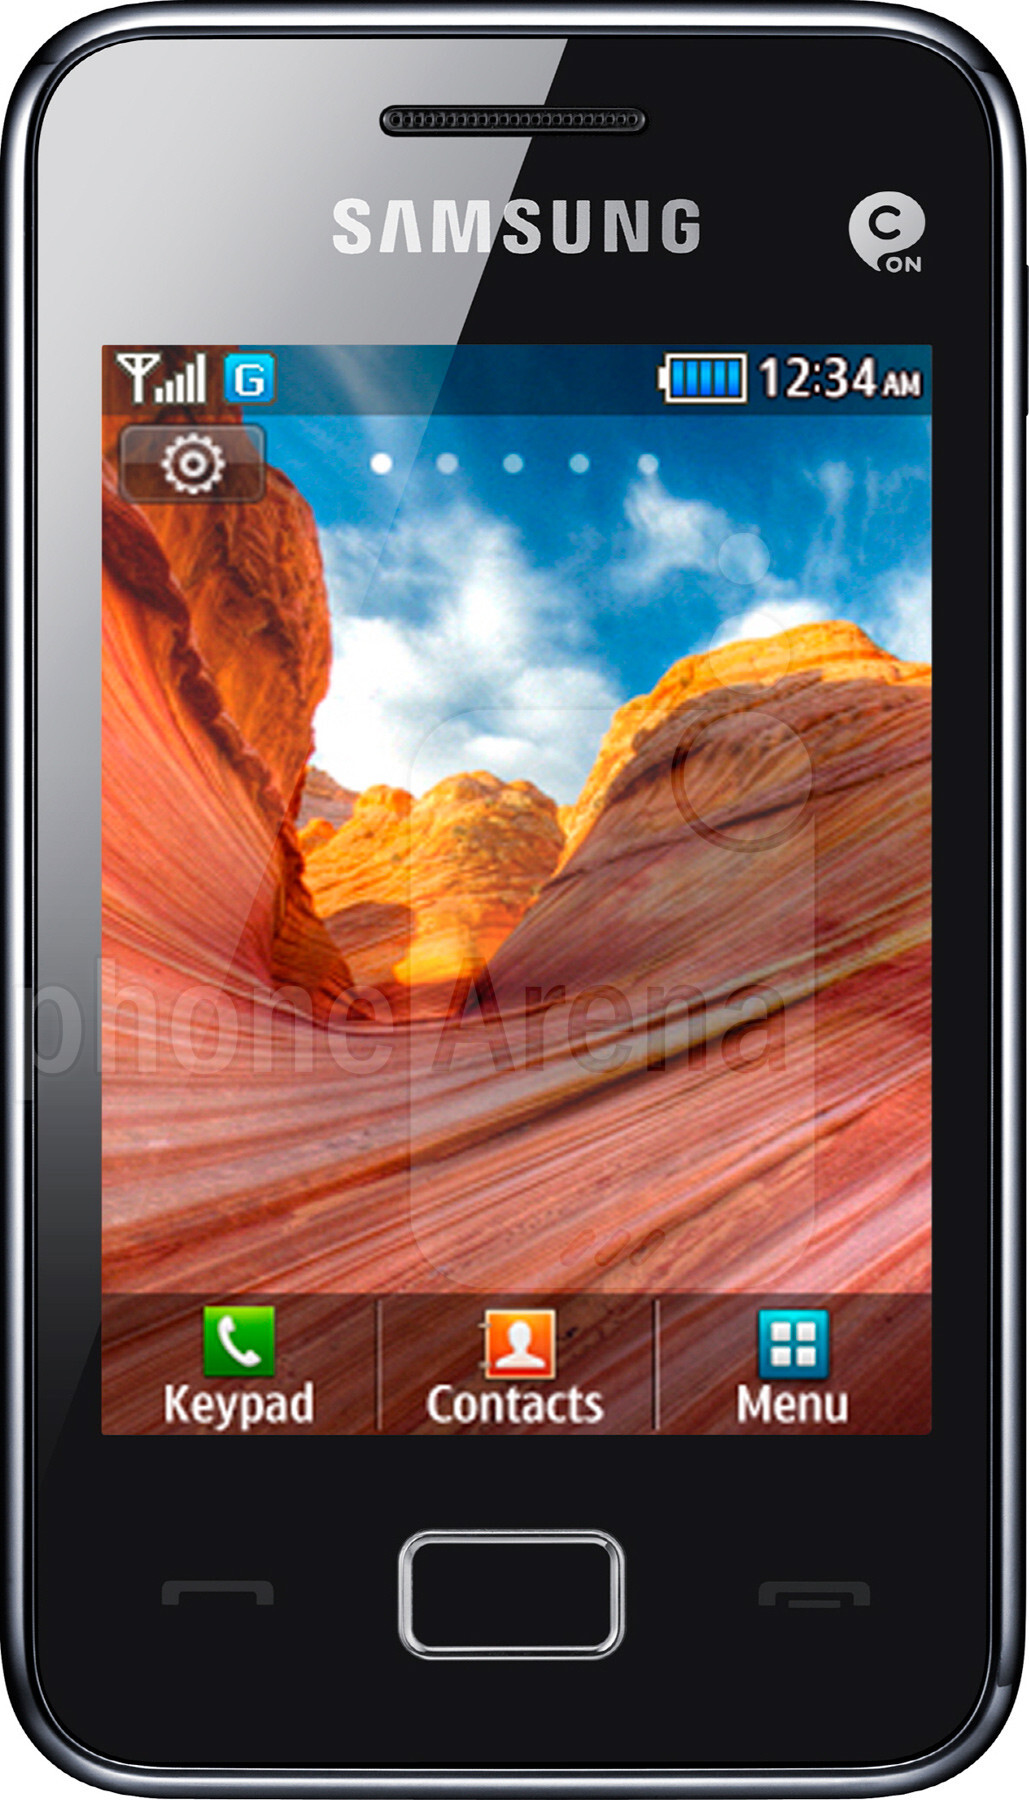 Alcatel Onetouch 997 Vs Samsung Star 3 Duos Visual Phone Size Compare Sansung